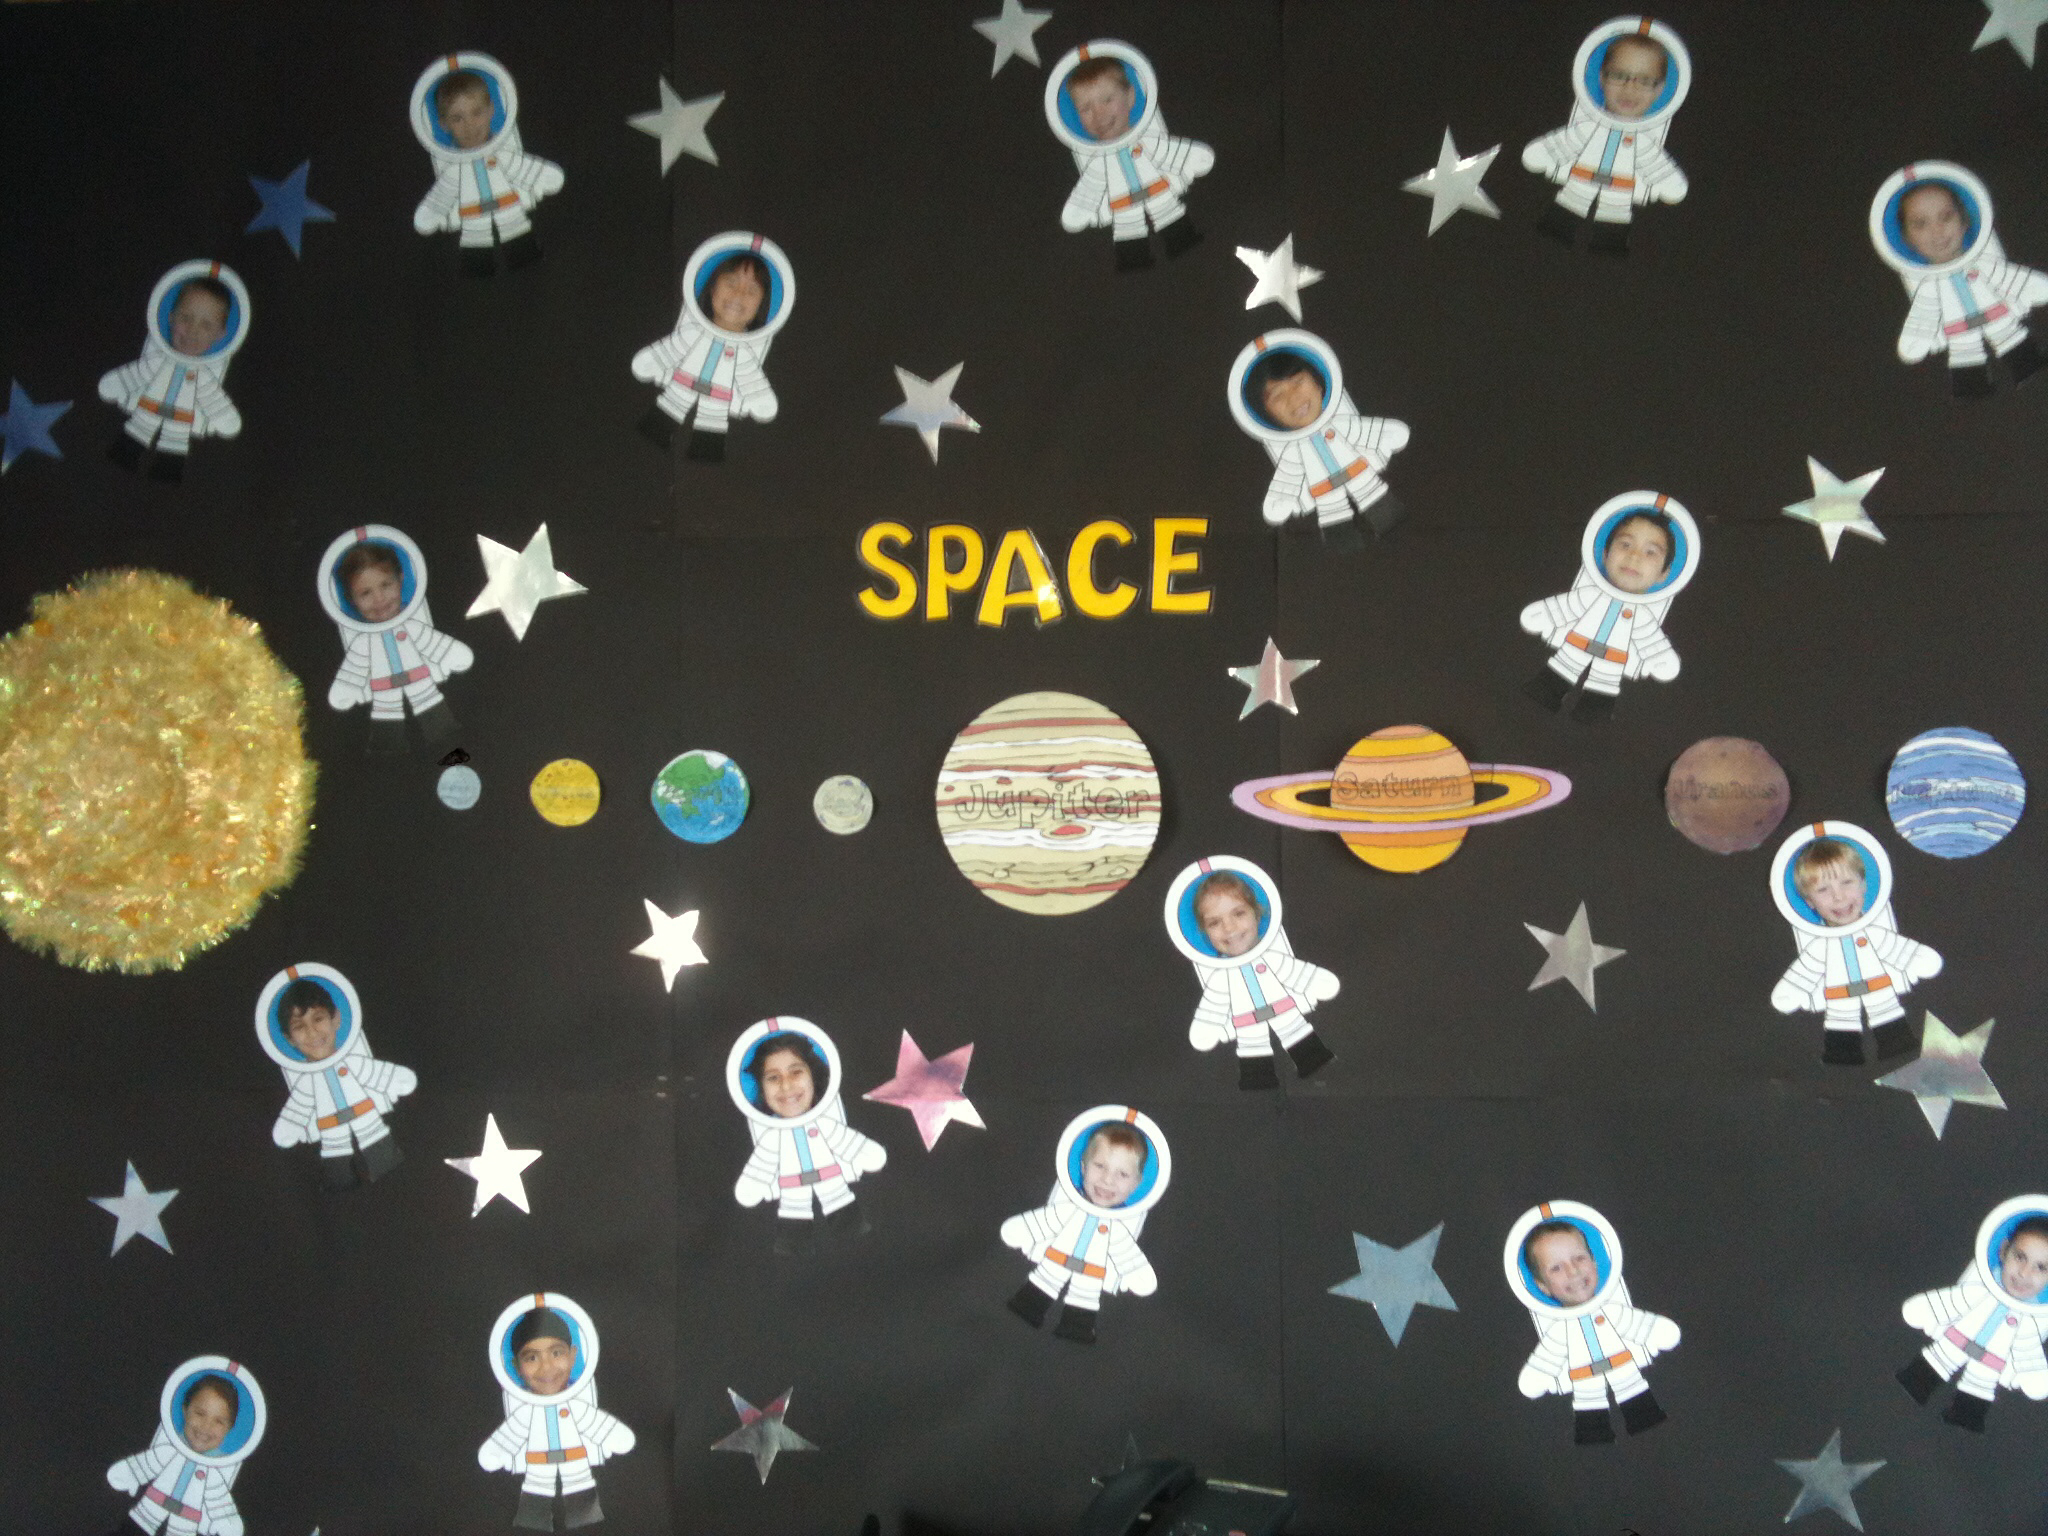 My space themed classroom display.